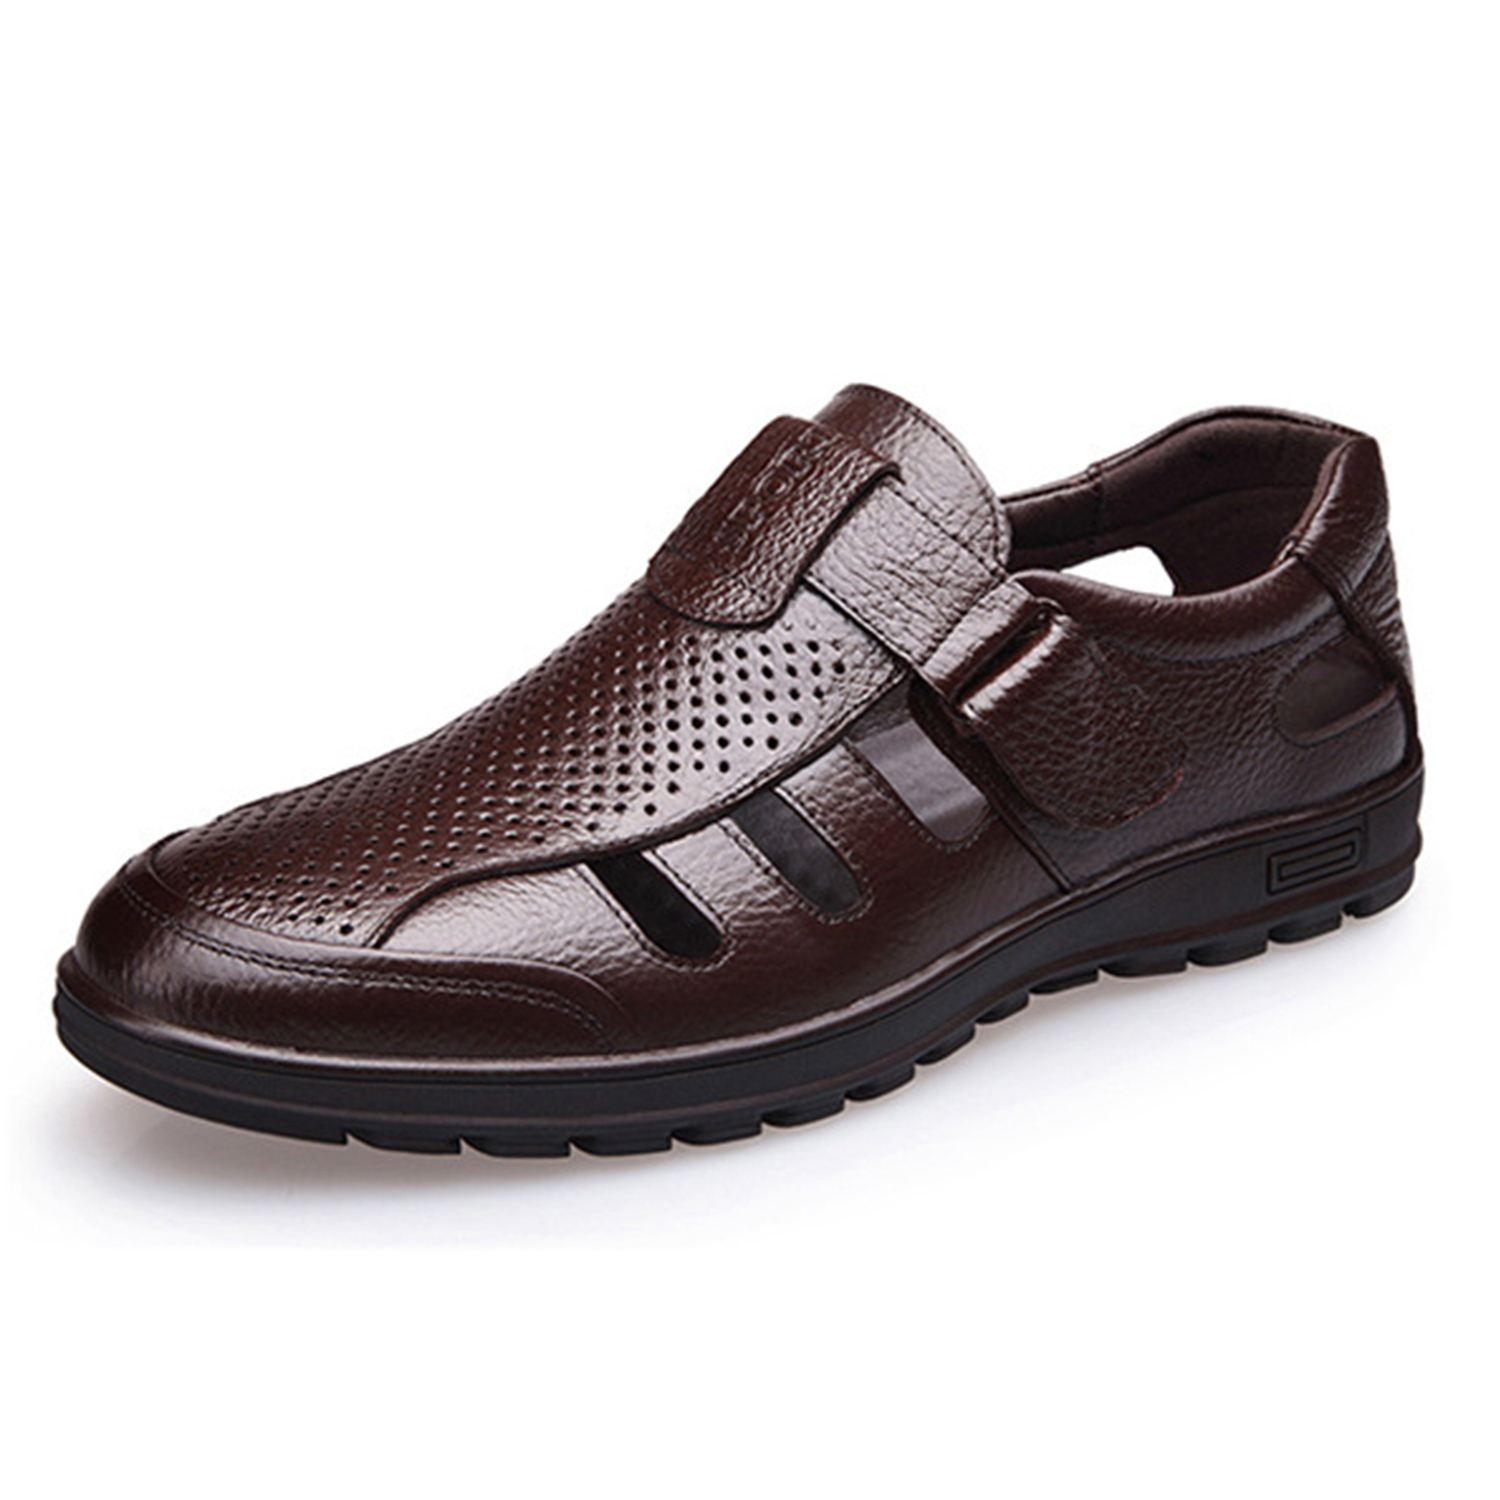 Image 3 - FGGS Genuine Leather Men Sandals Shoes Fretwork Breathable Fisherman Shoes Style Retro Gladiator Soft Bottom summer Classics m-in Men's Sandals from Shoes